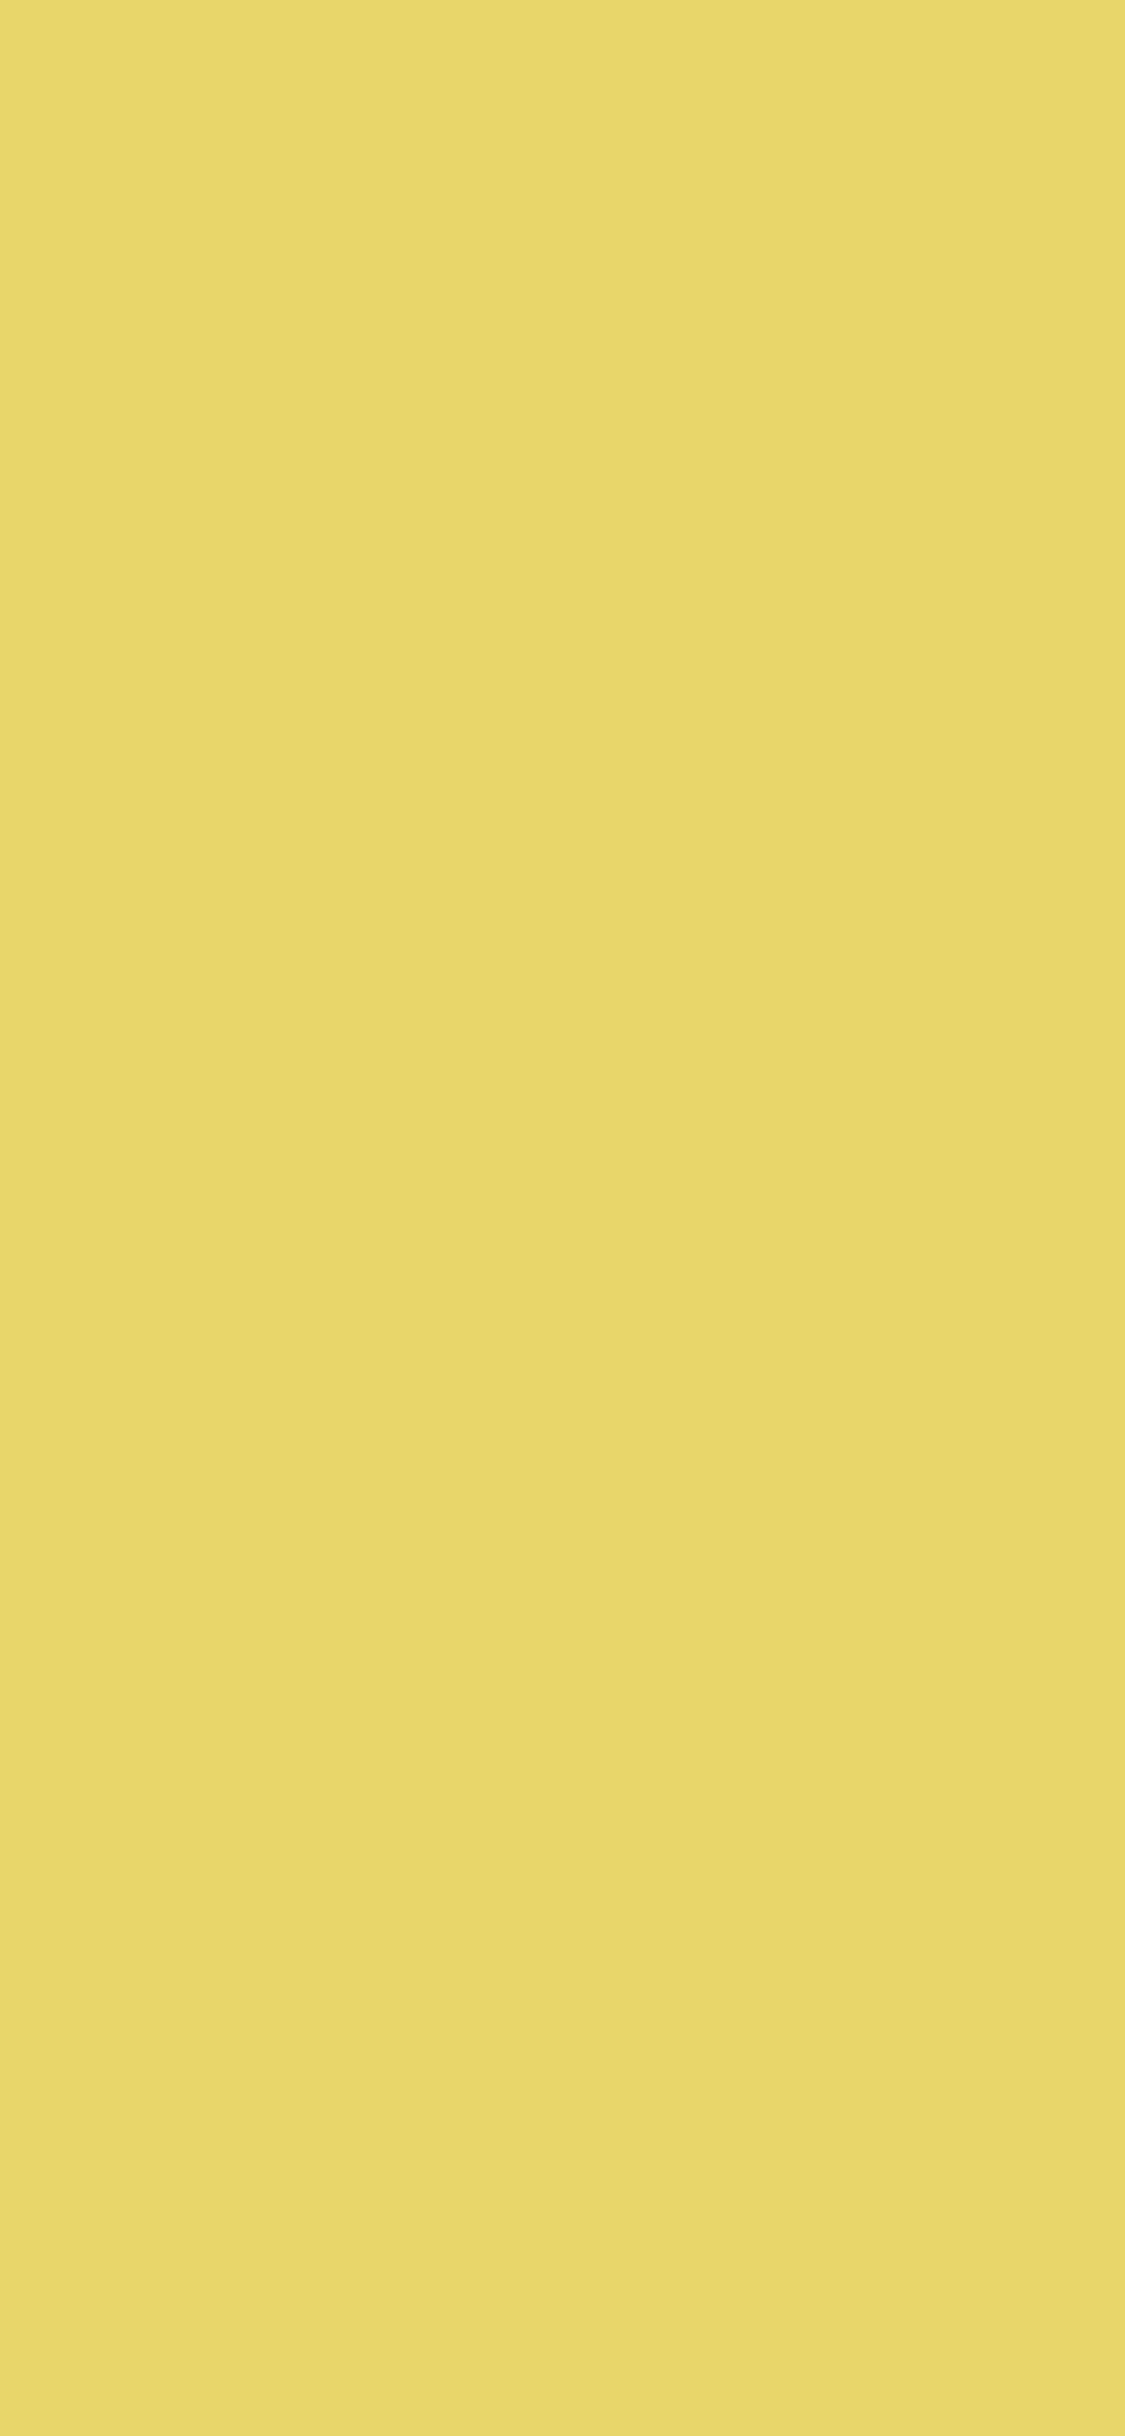 1125x2436 Arylide Yellow Solid Color Background